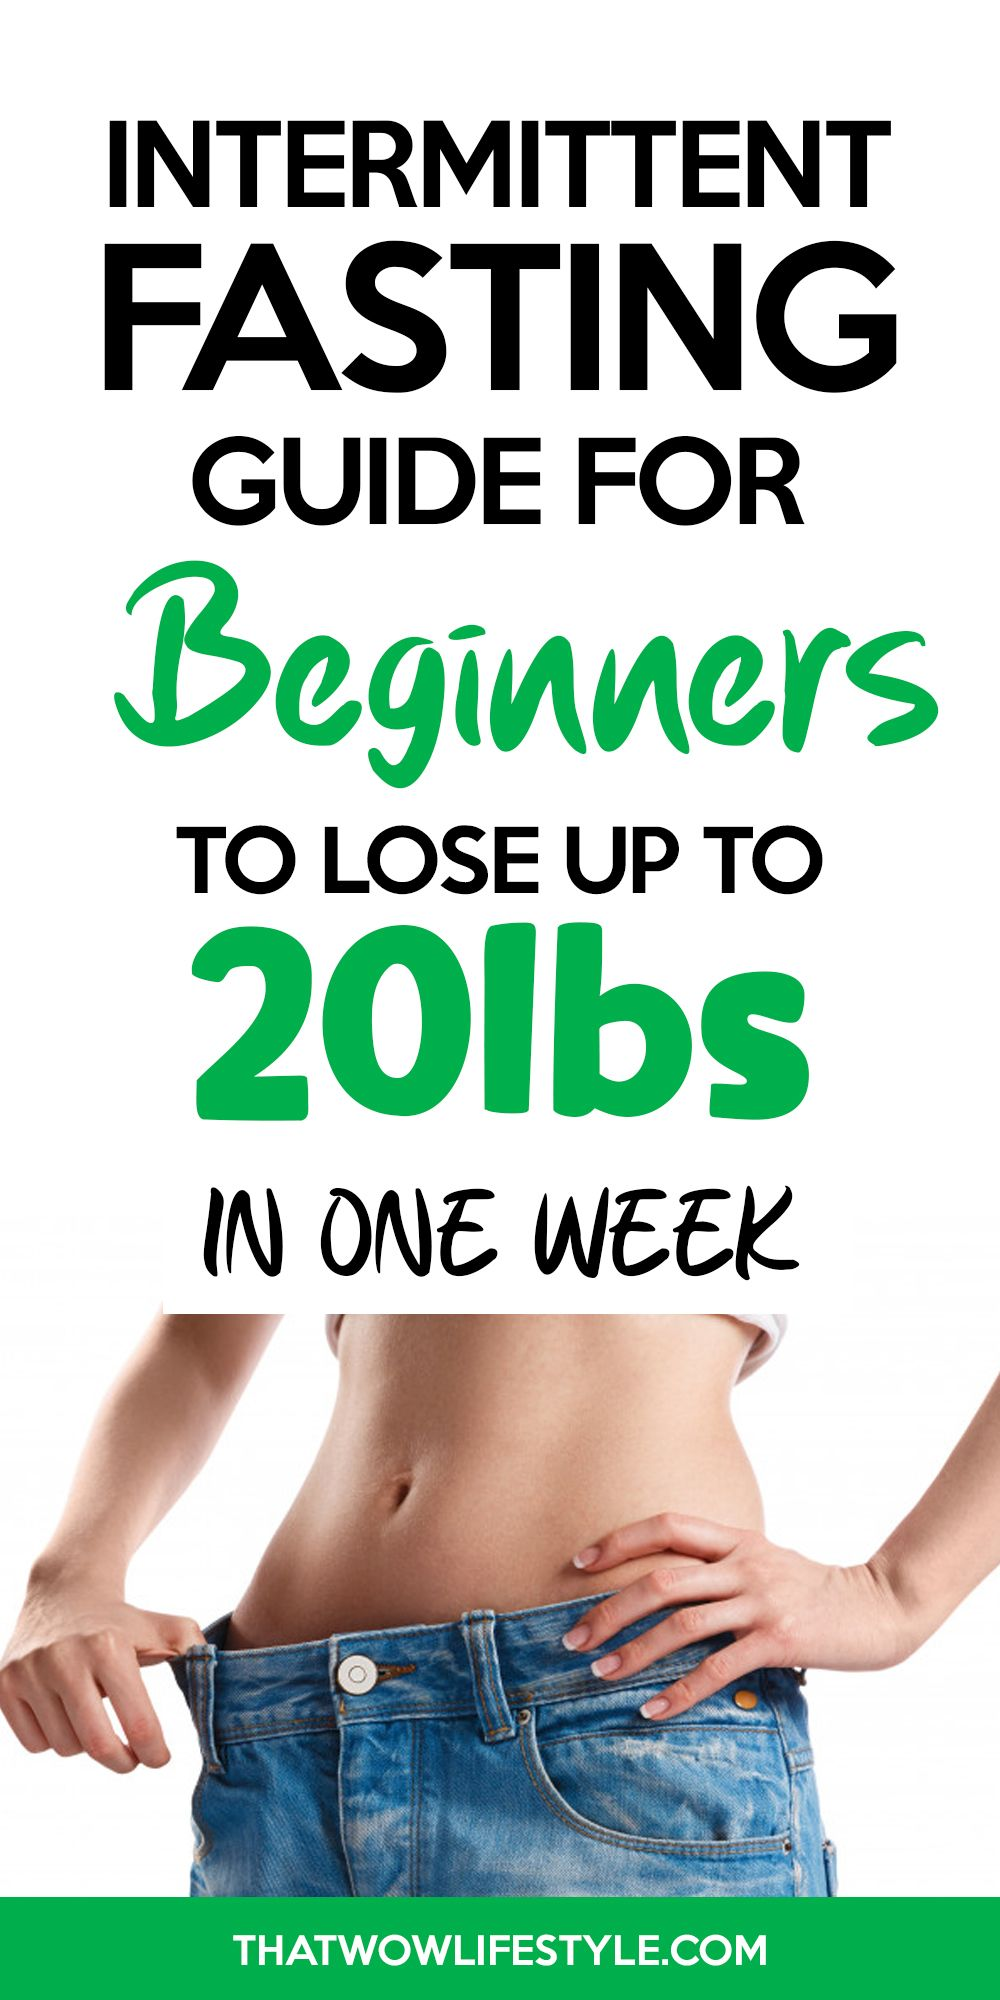 Photo of Intermittent Fasting Guide For Beginners To Lose Weight Fast